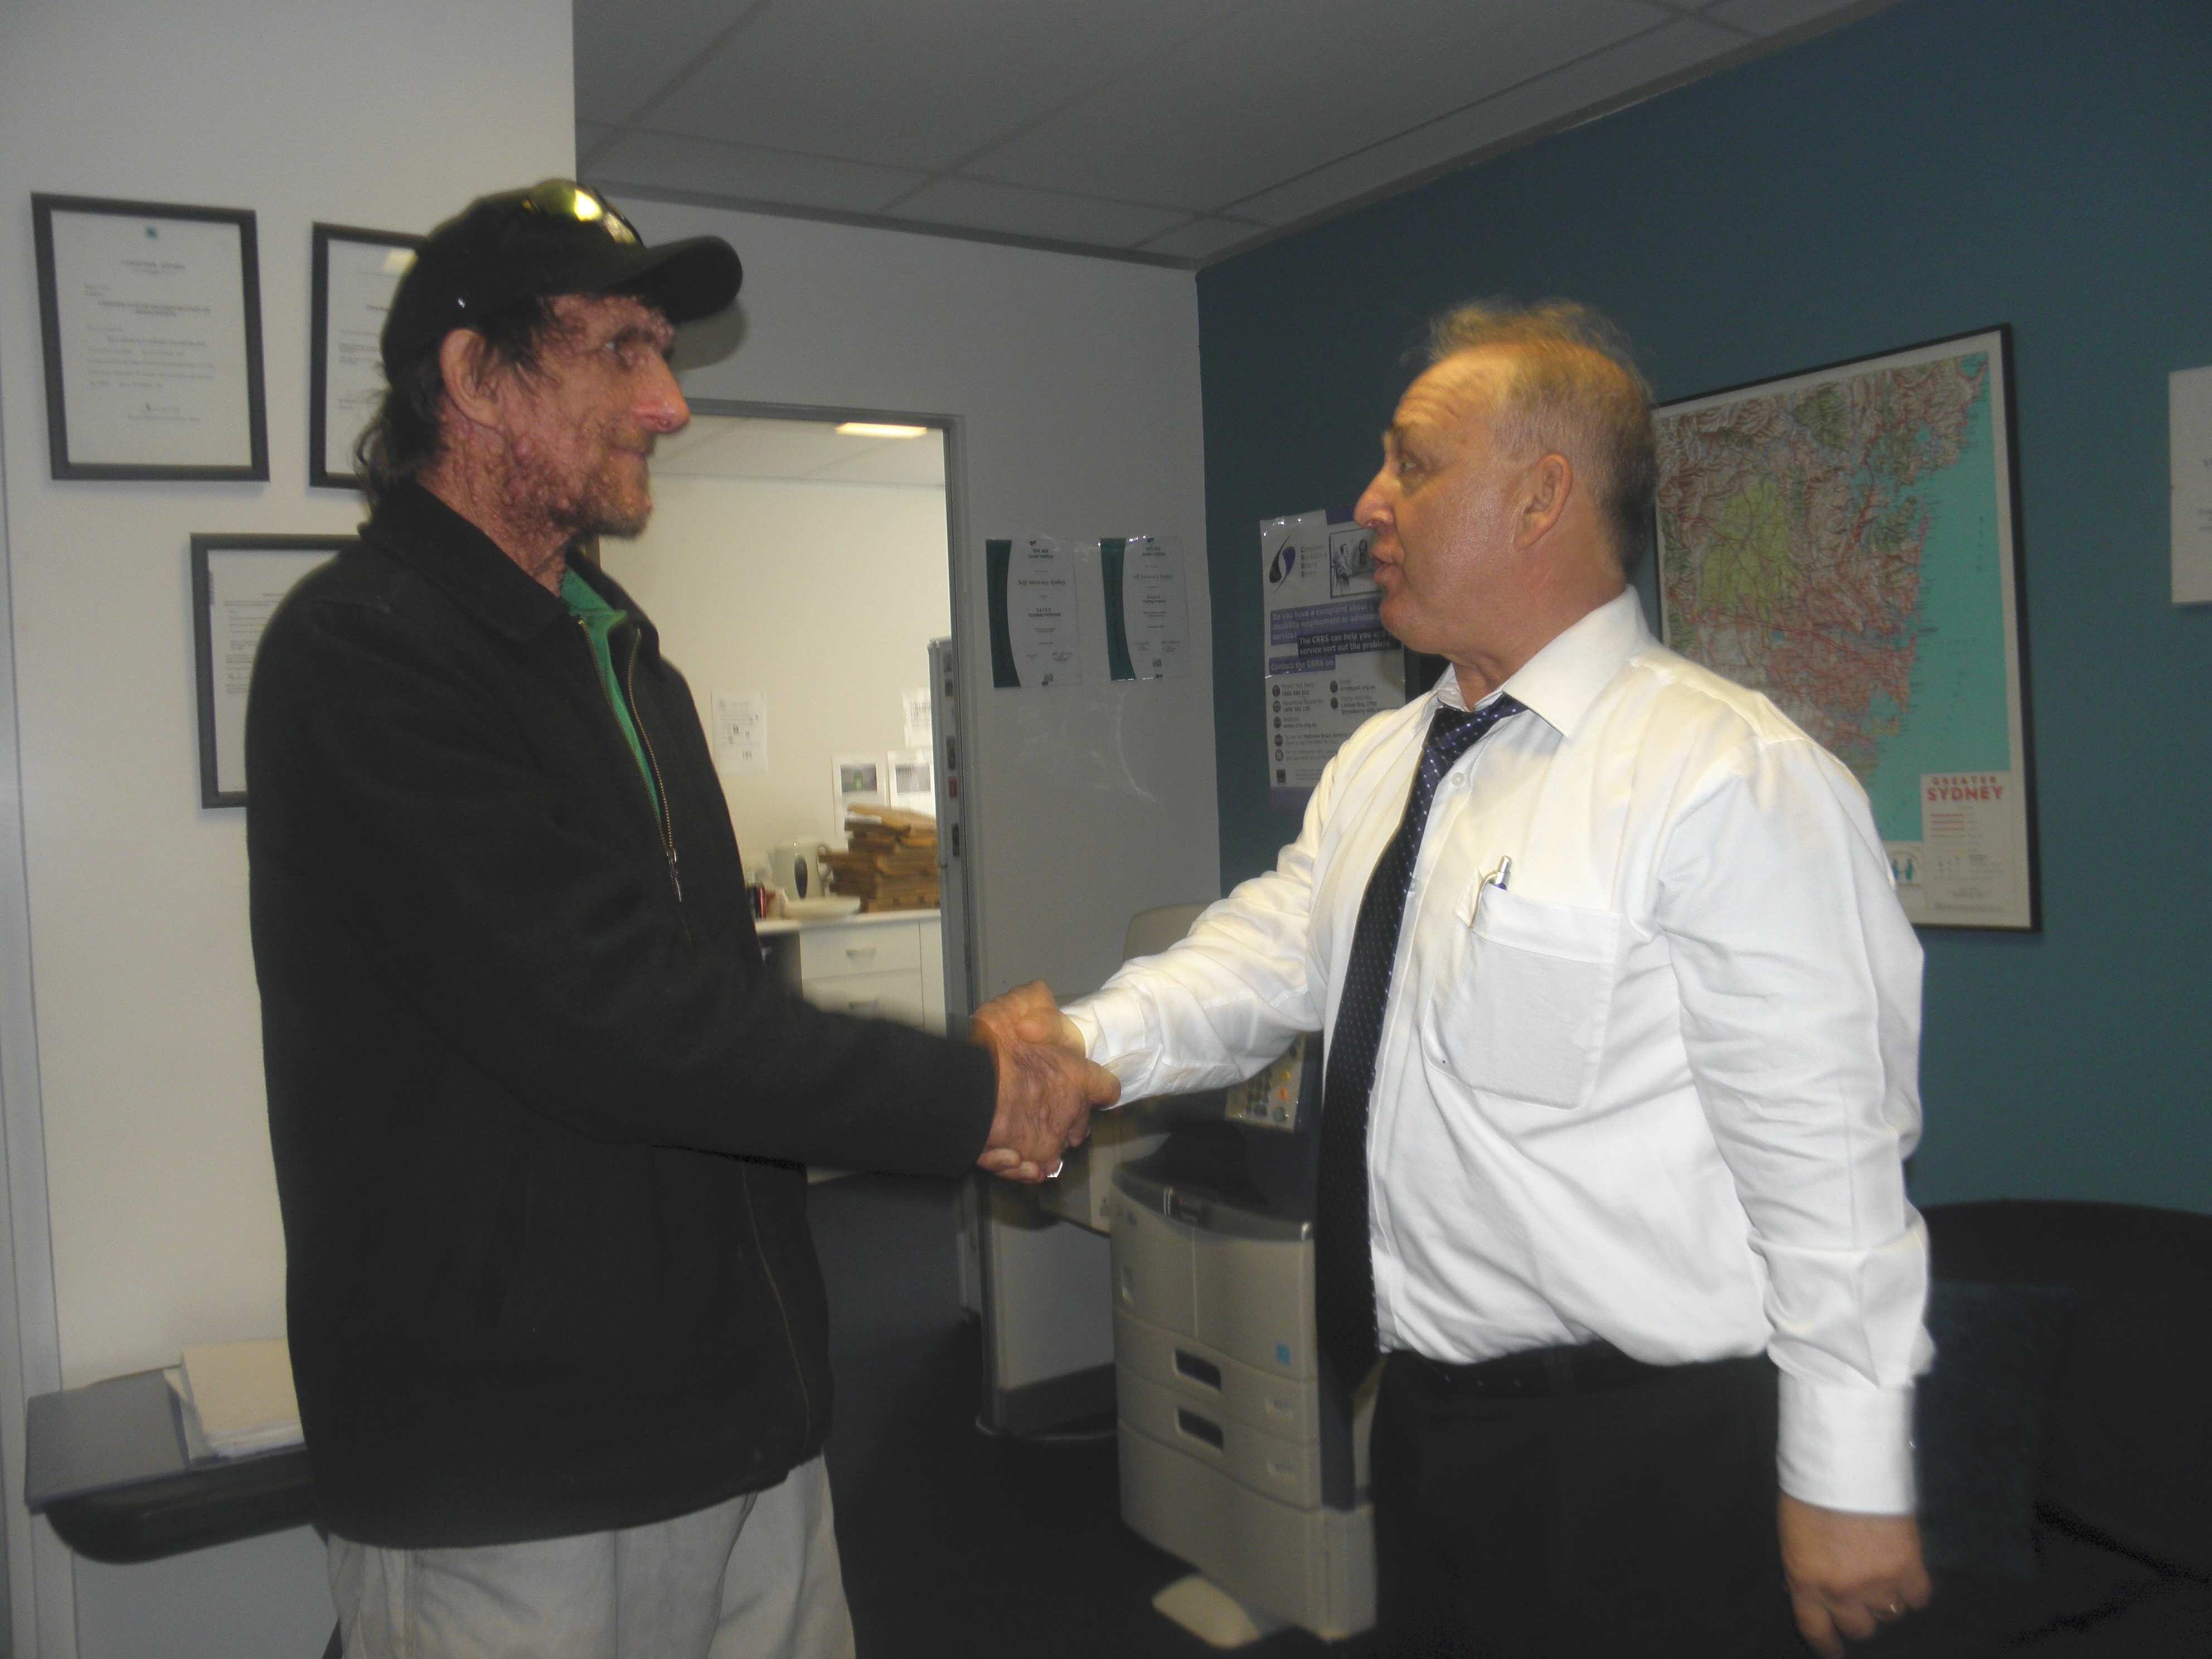 Arthur Bozikas shaking hands with a member